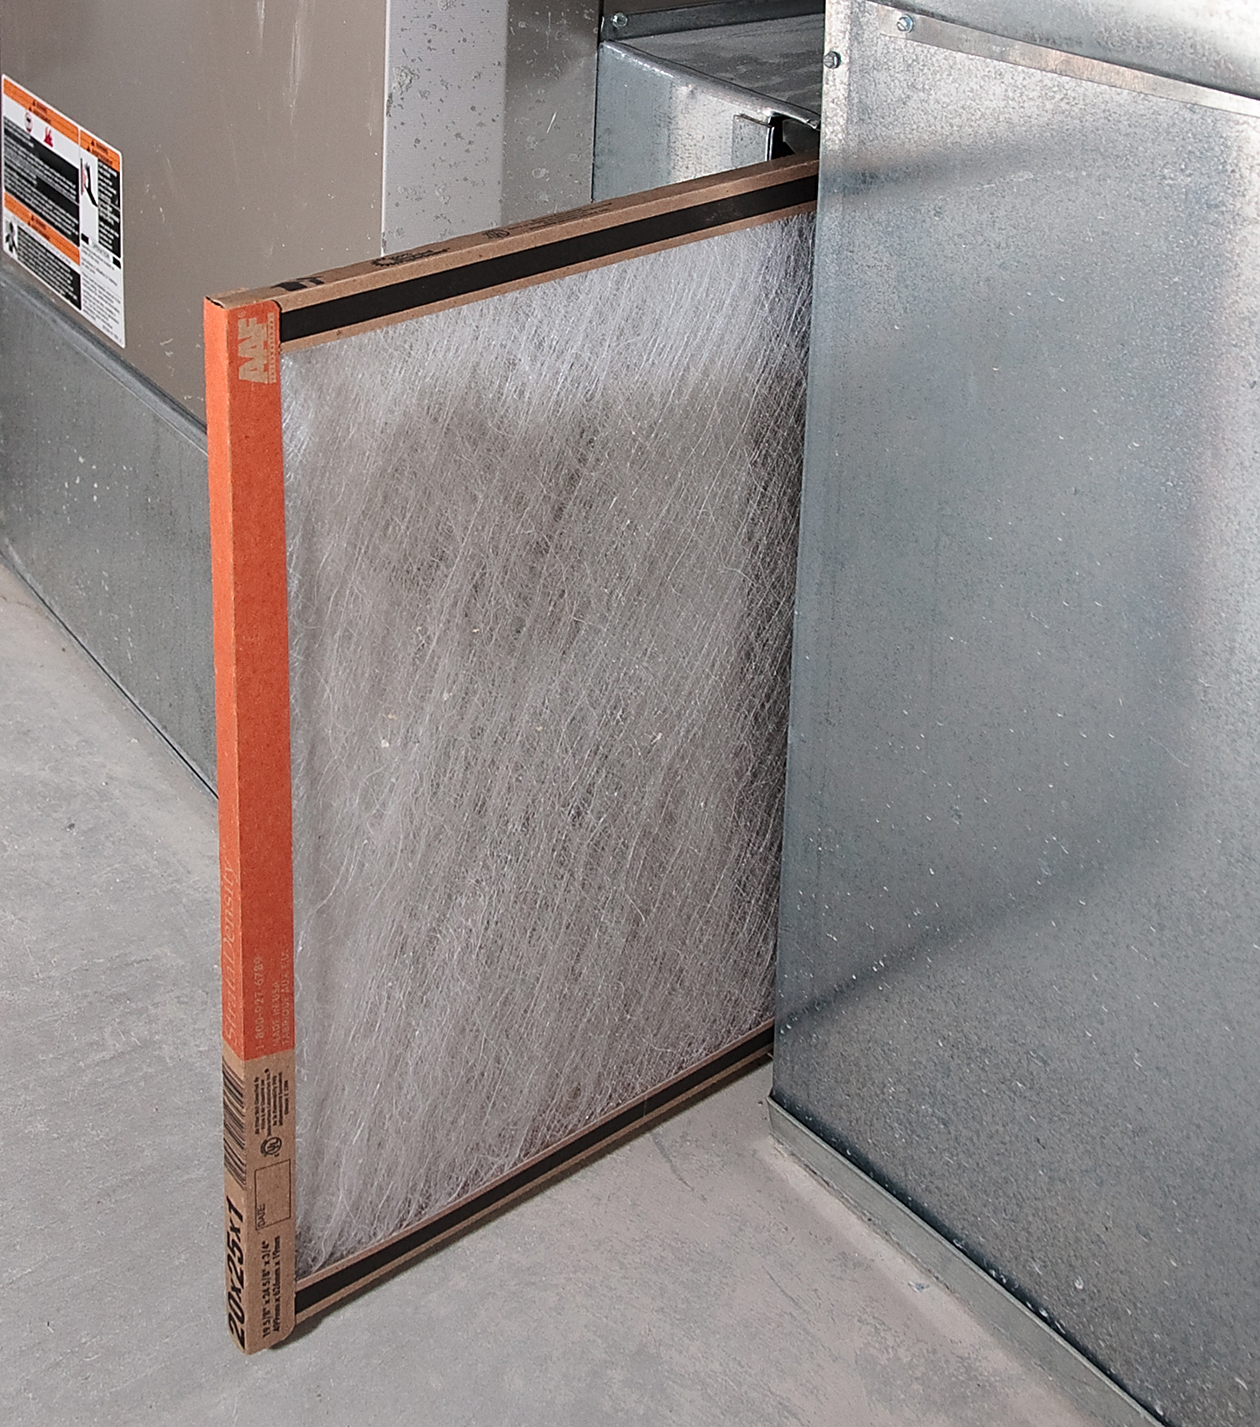 Tuesday's Tip – Change your furnace filter